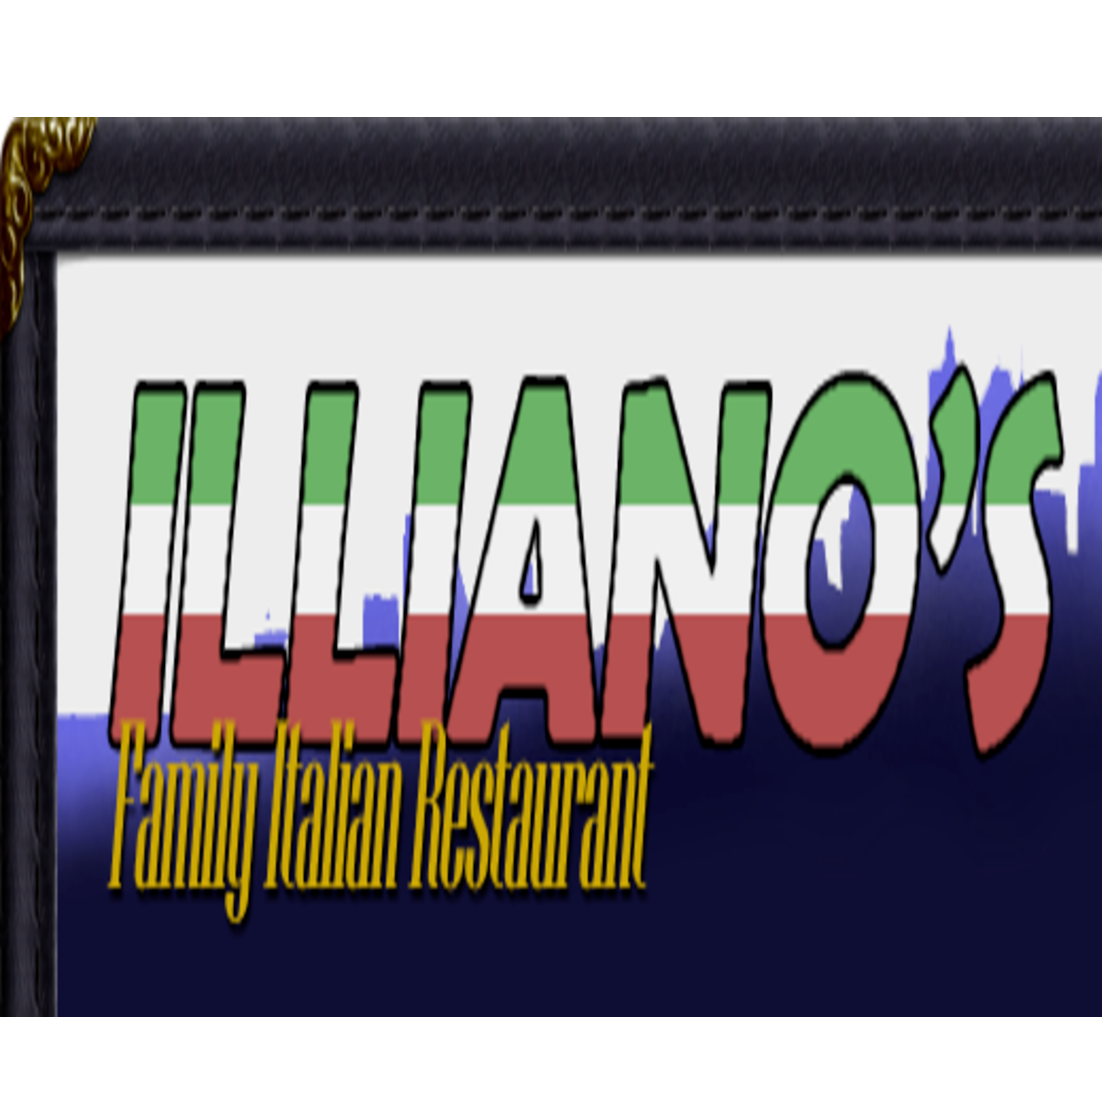 Illianos pizza - Clemmons, NC 27012 - (336)712-1059 | ShowMeLocal.com